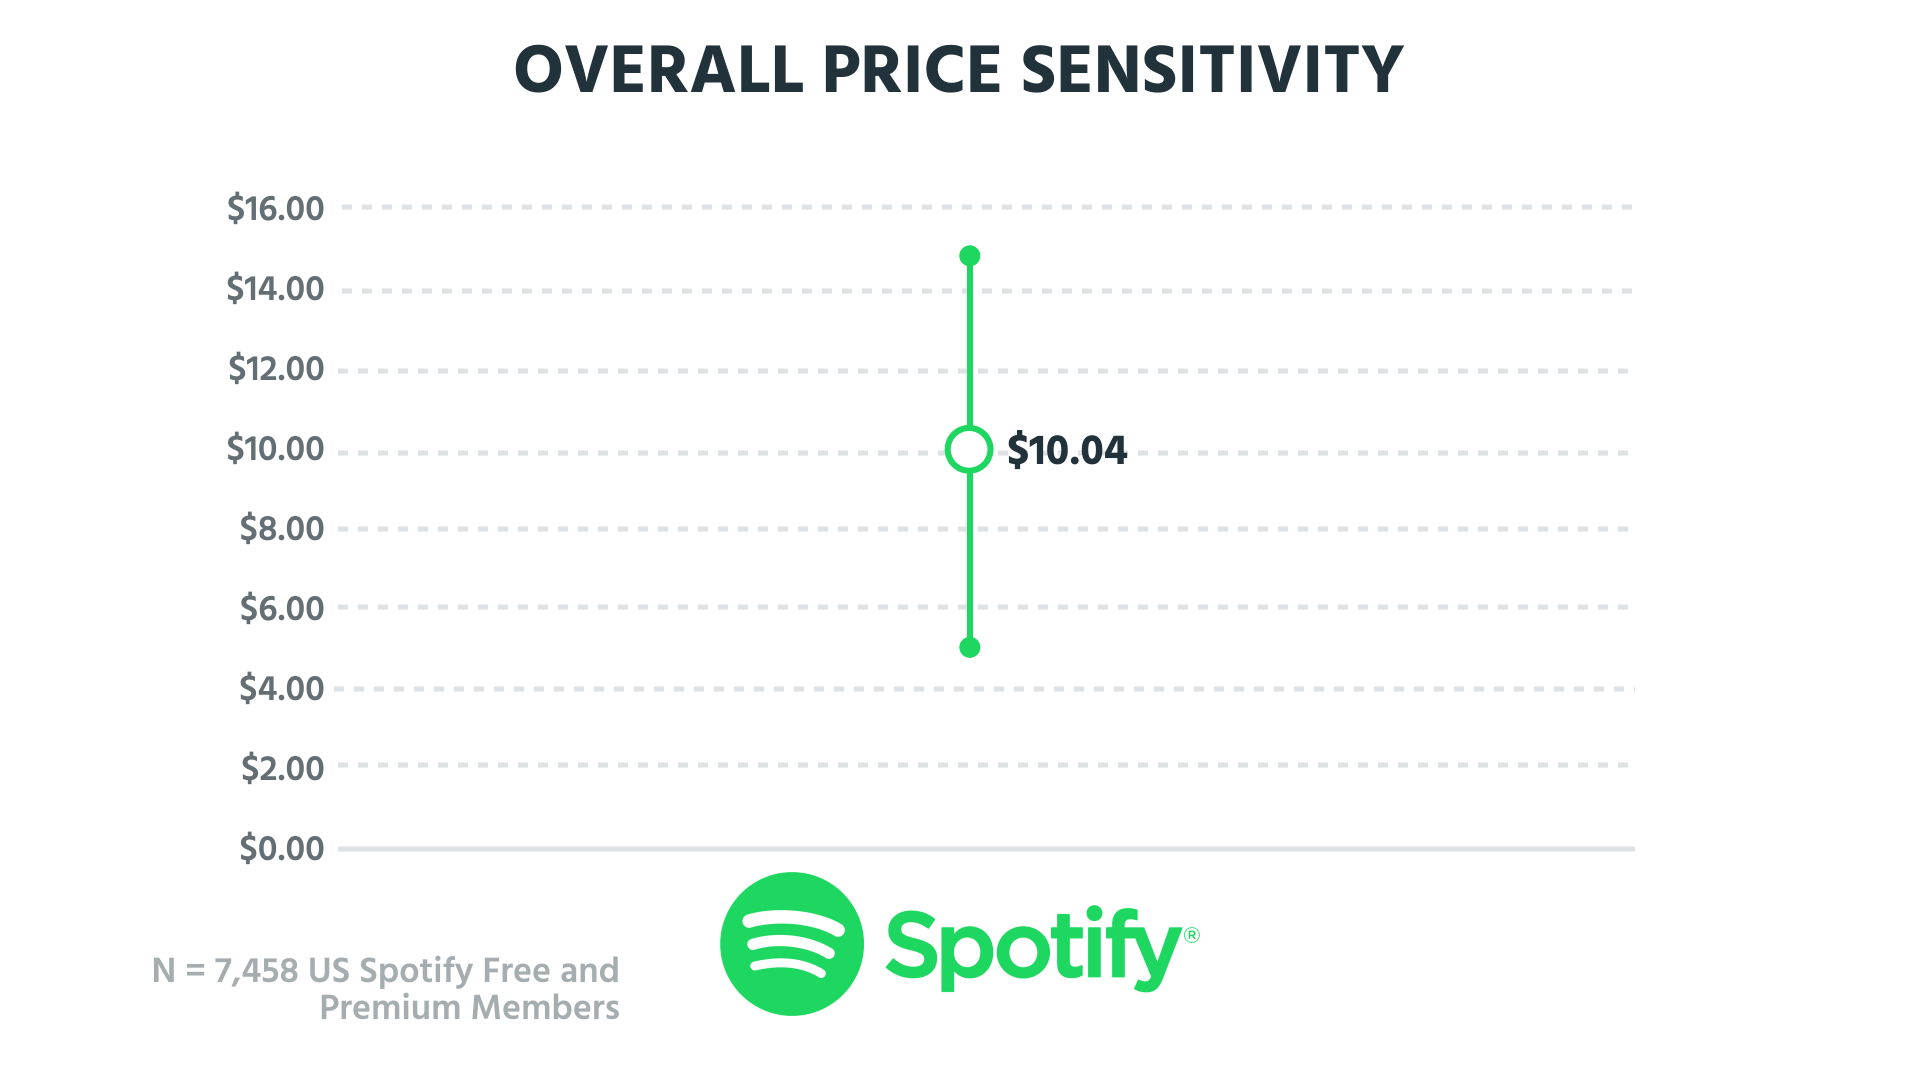 spotifypricesensitivity.png